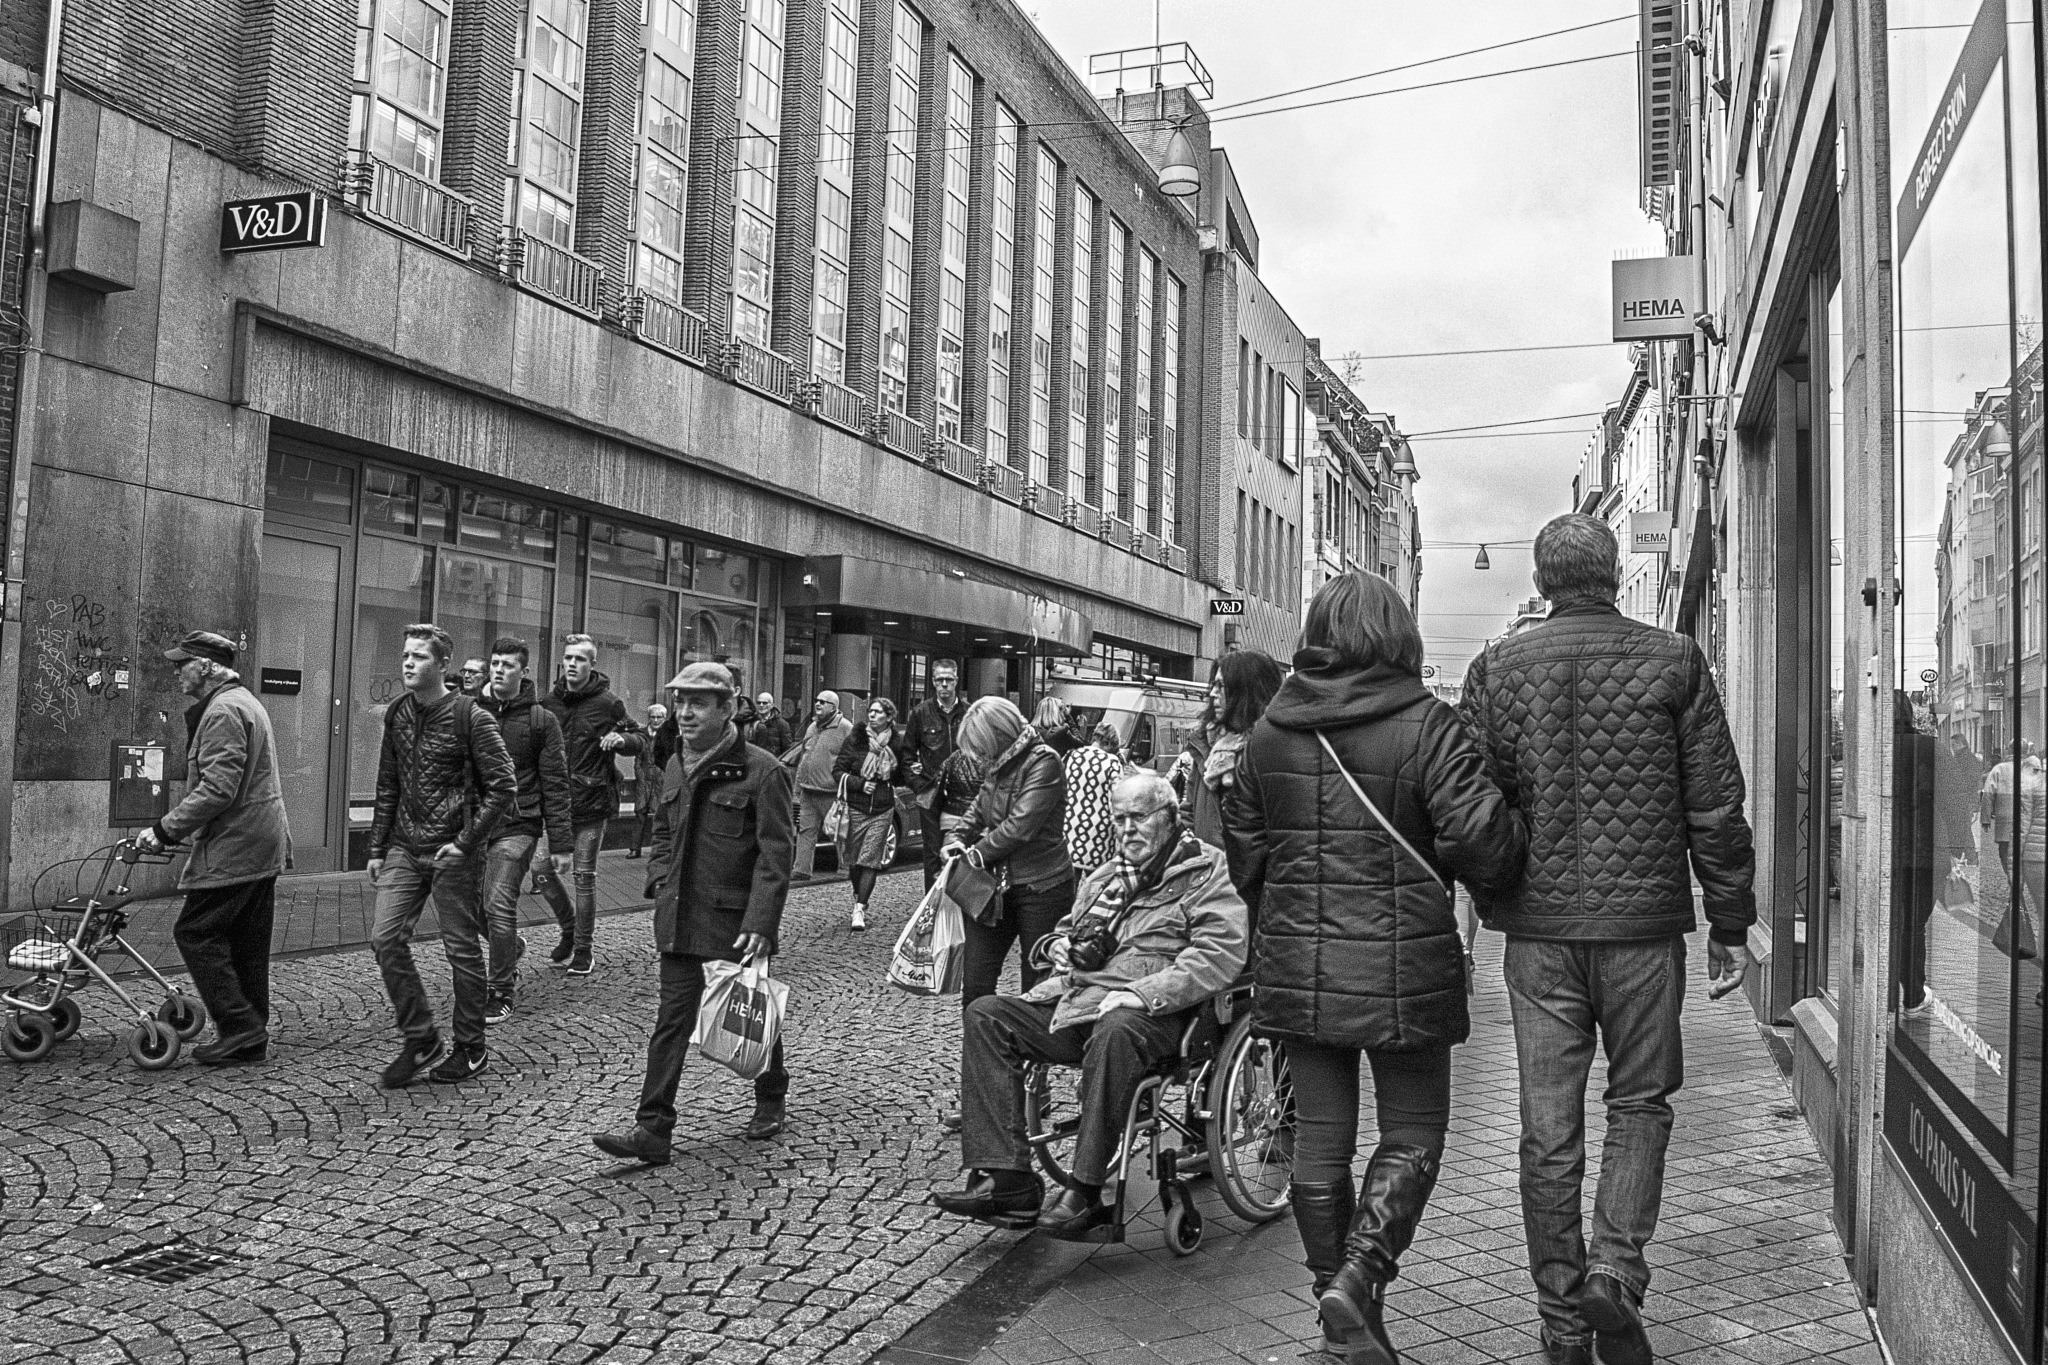 streetphotography by beertje53